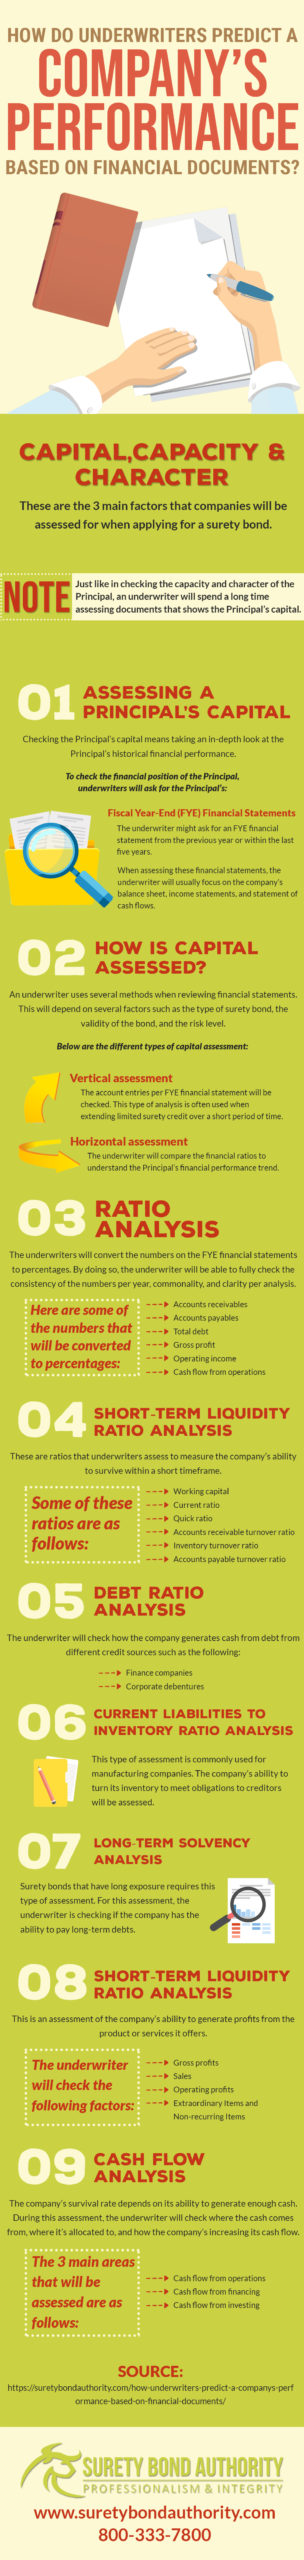 Underwriting Infographic